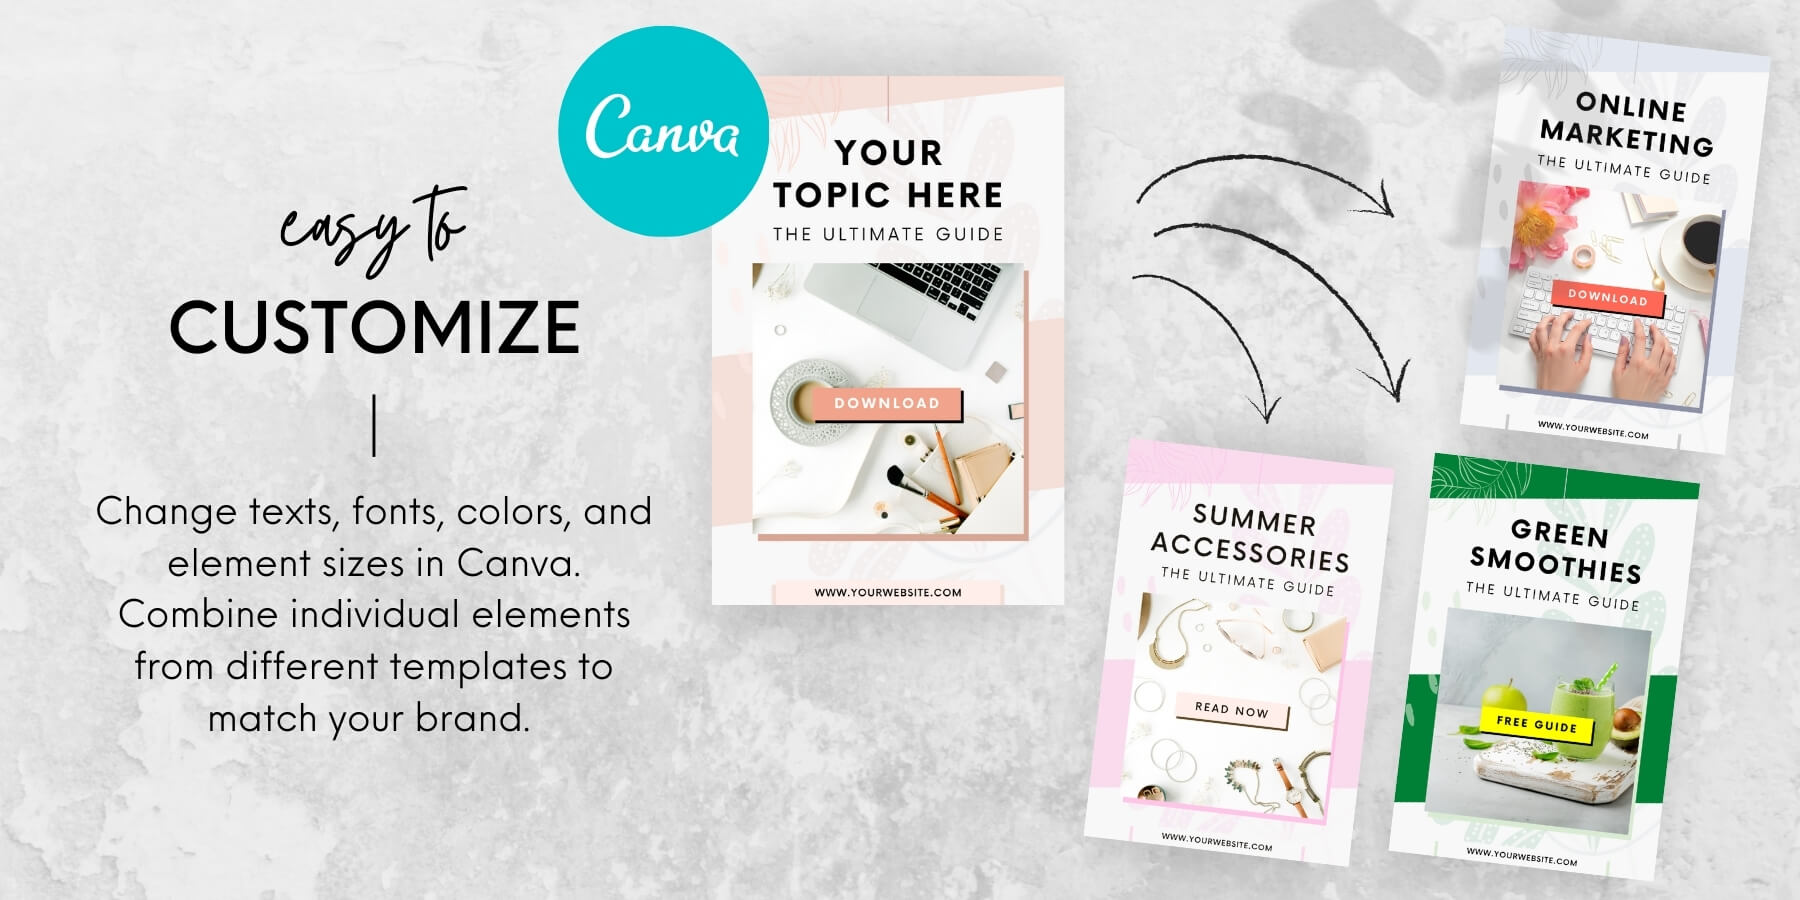 Canva Pinterest templates - Easy to customize and edit to match your brand and needs